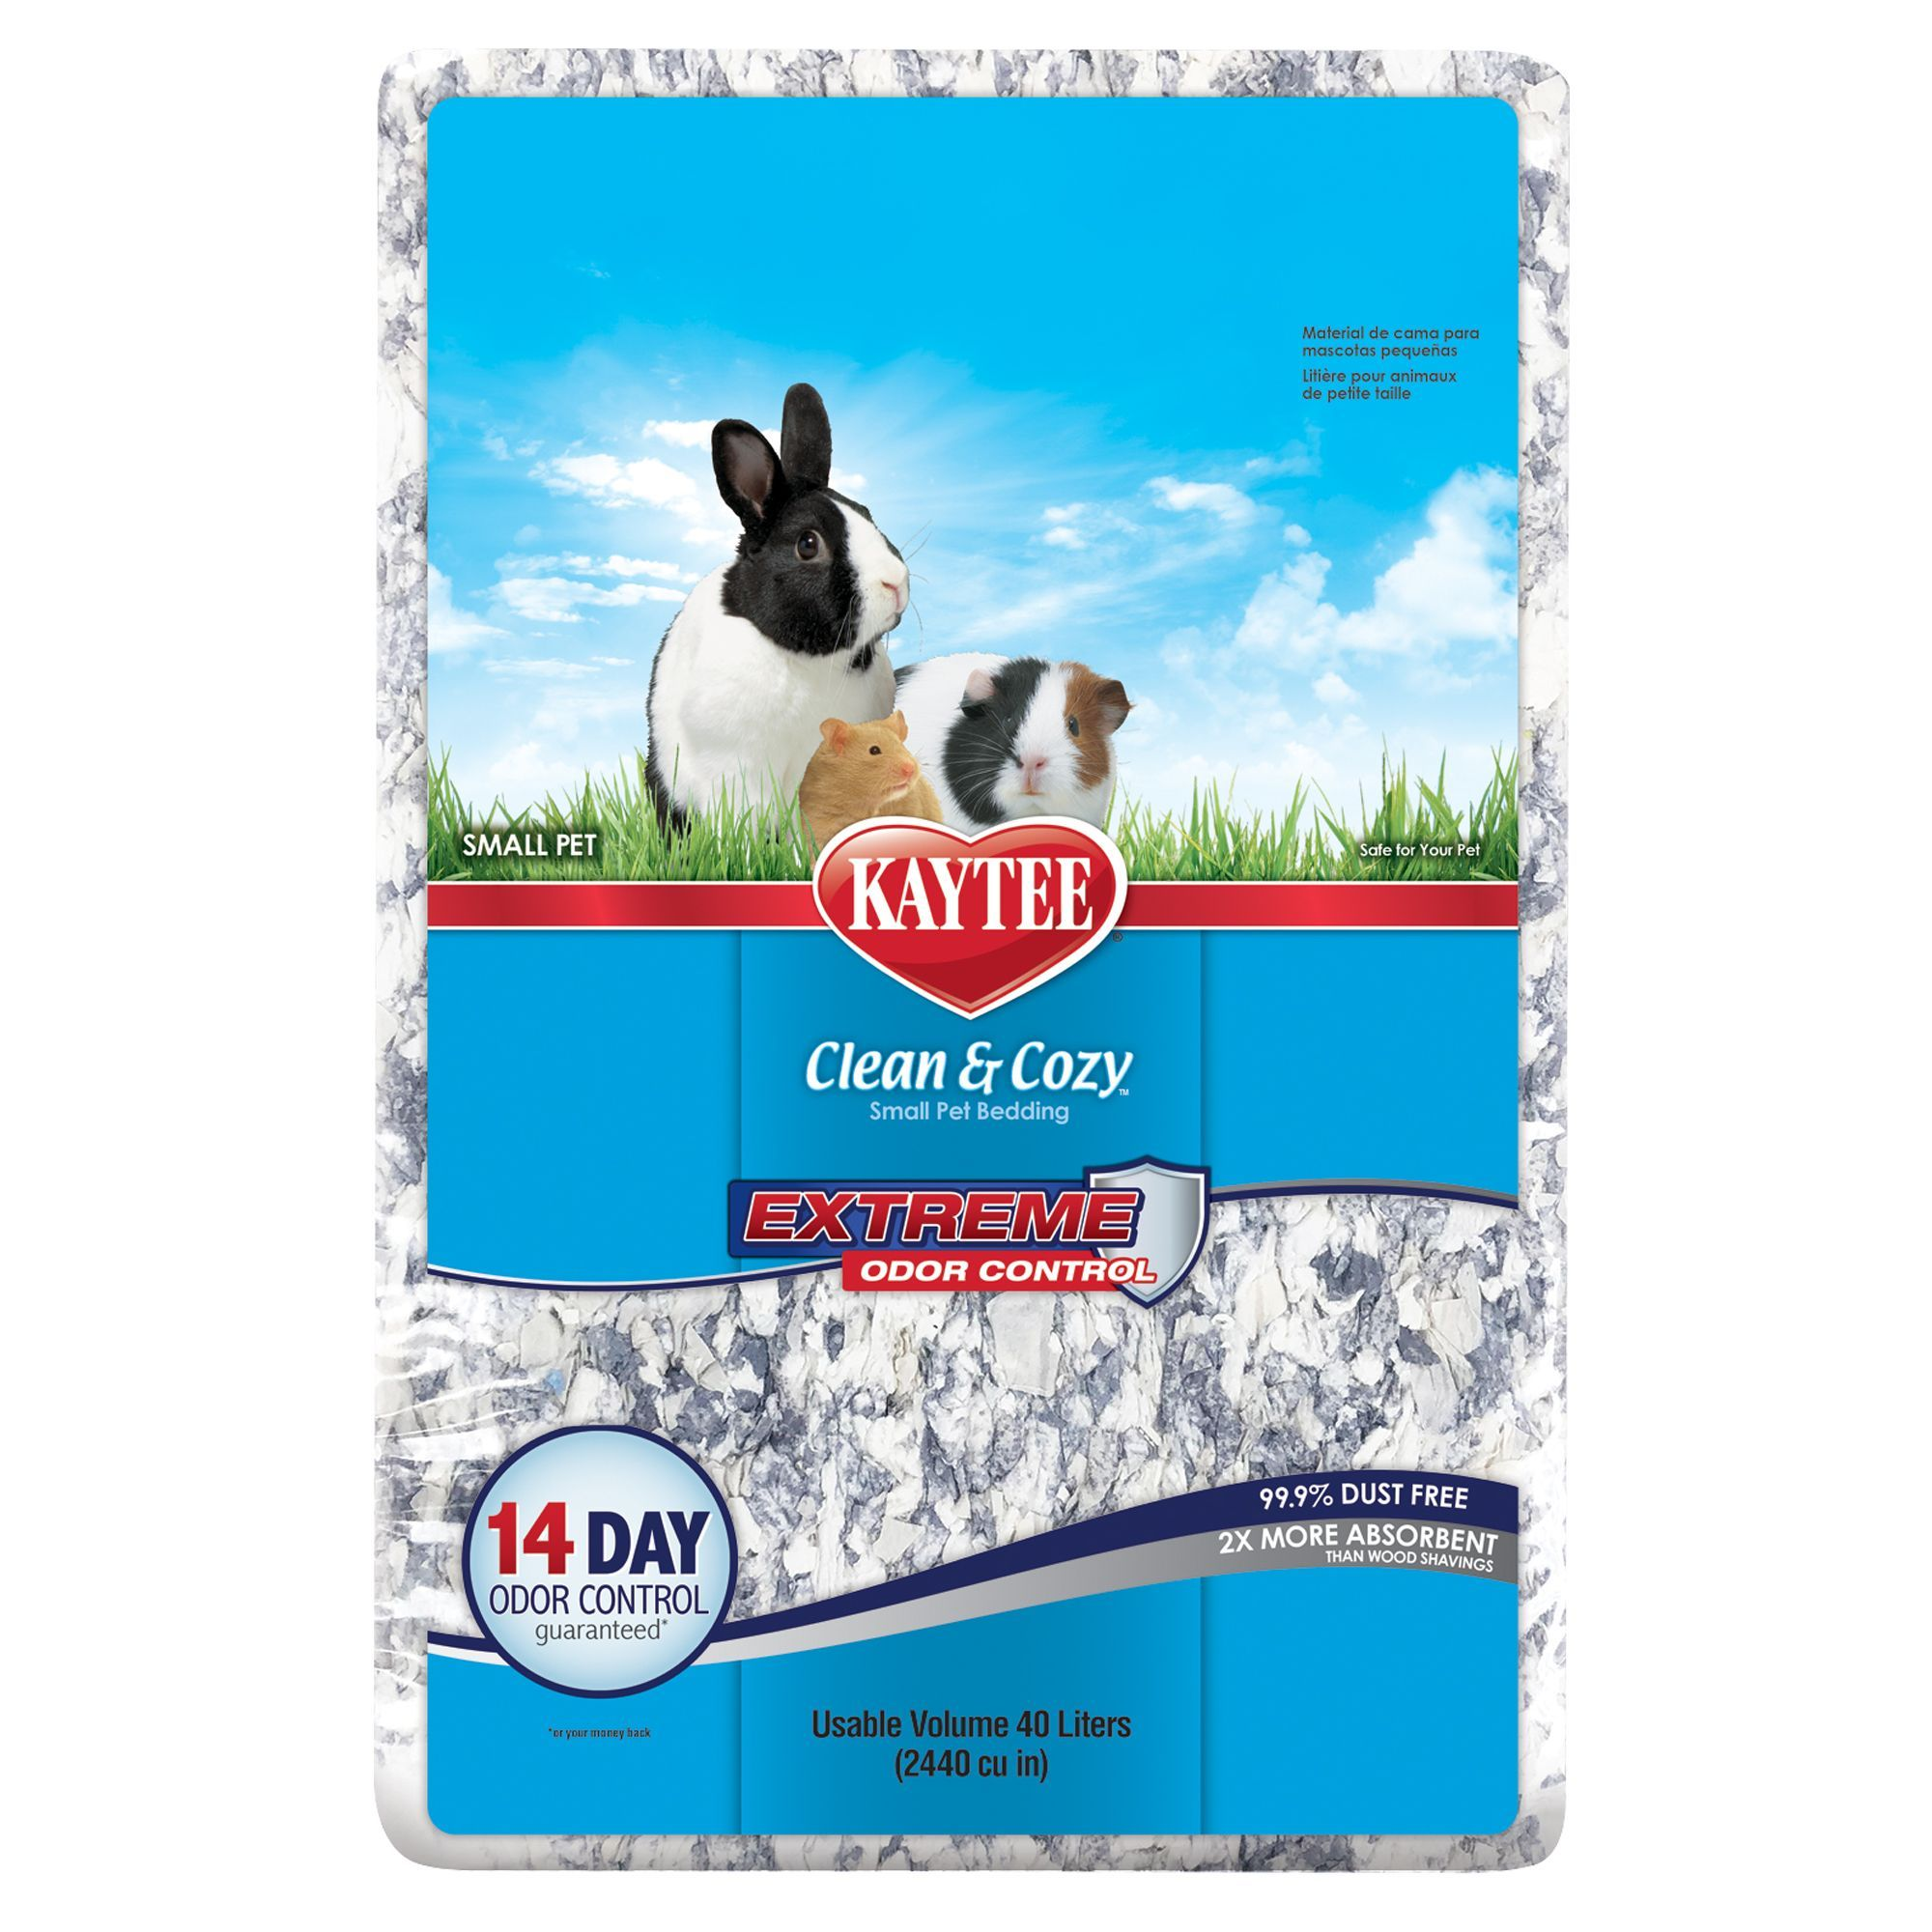 KAYTEE Clean and Cozy, Extreme Odor Control Small Pet